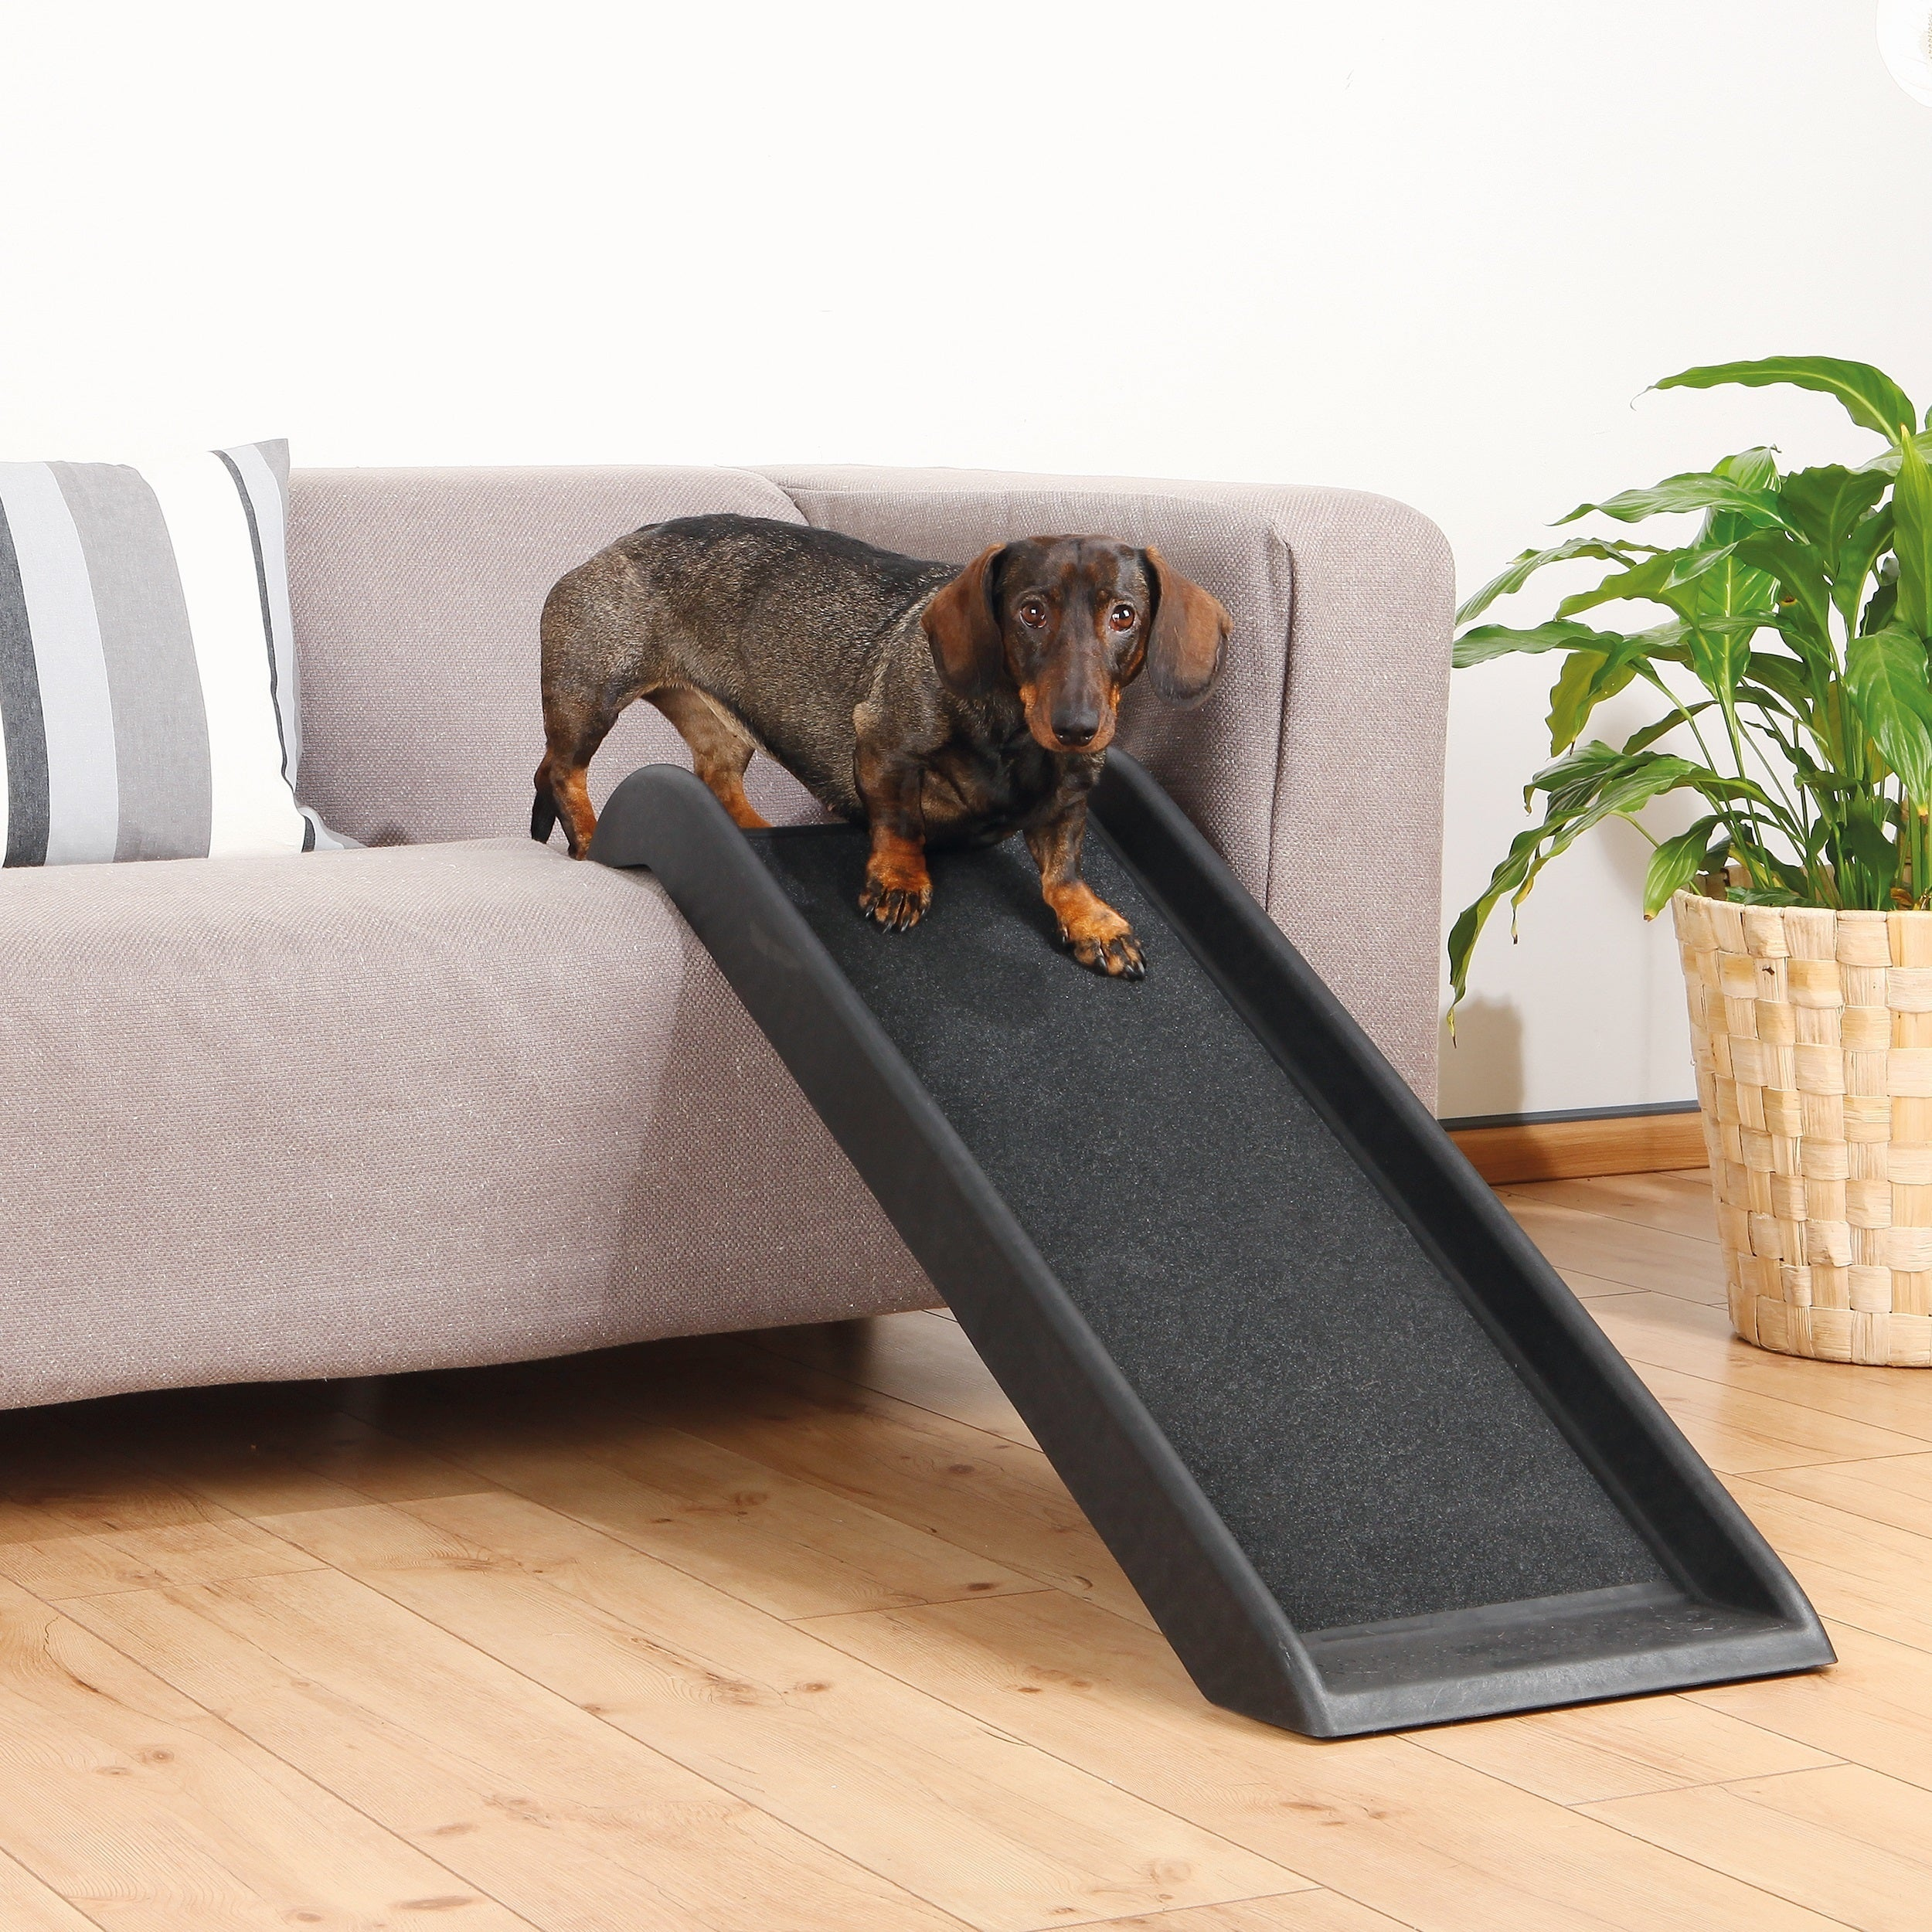 Trixie 39-inch Pet Safety Ramp (Black)